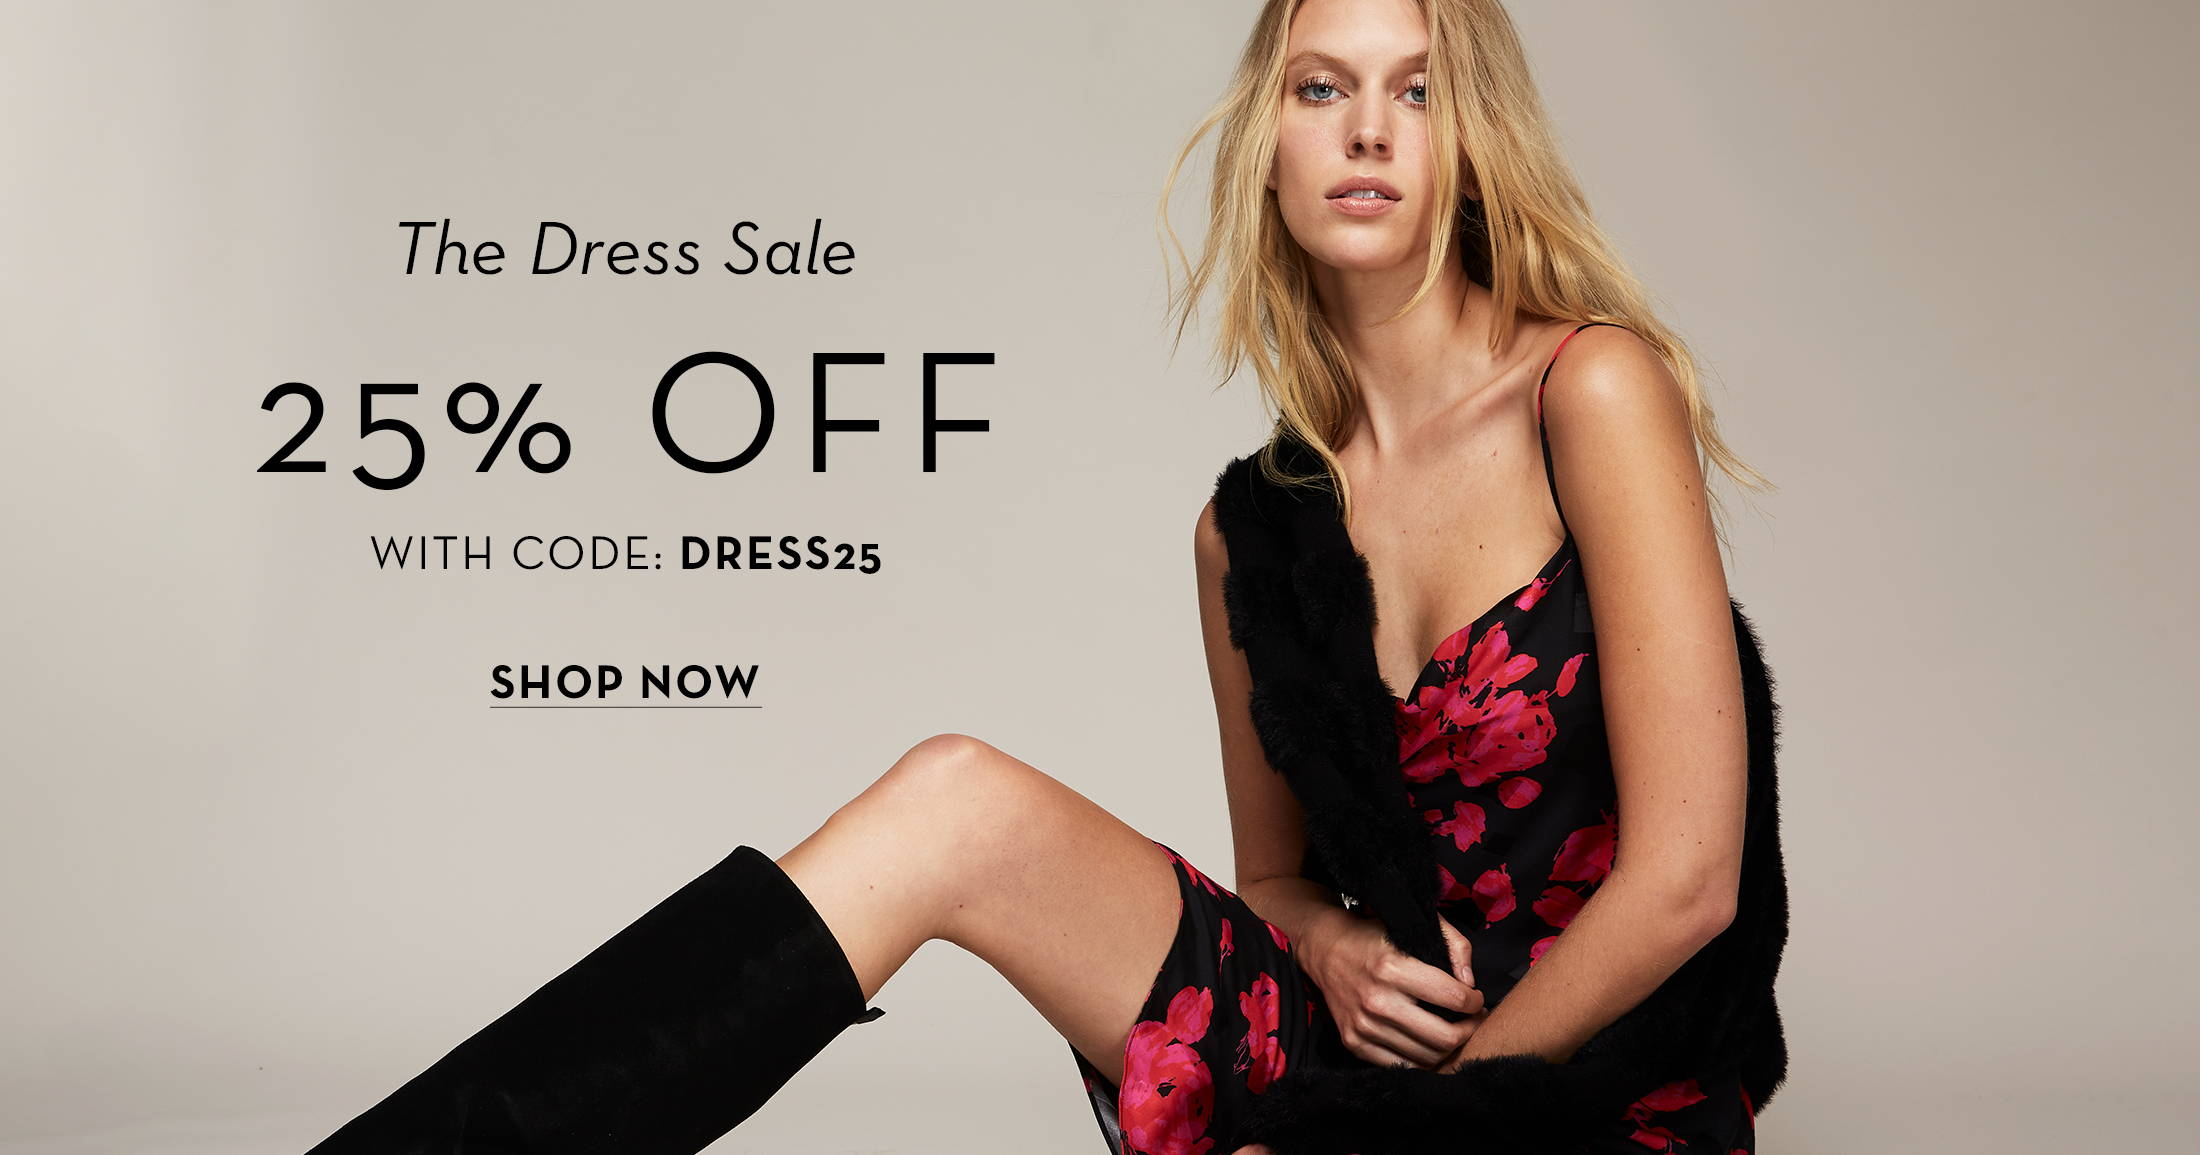 The dress sale 25% off with code DRESS25 shop now